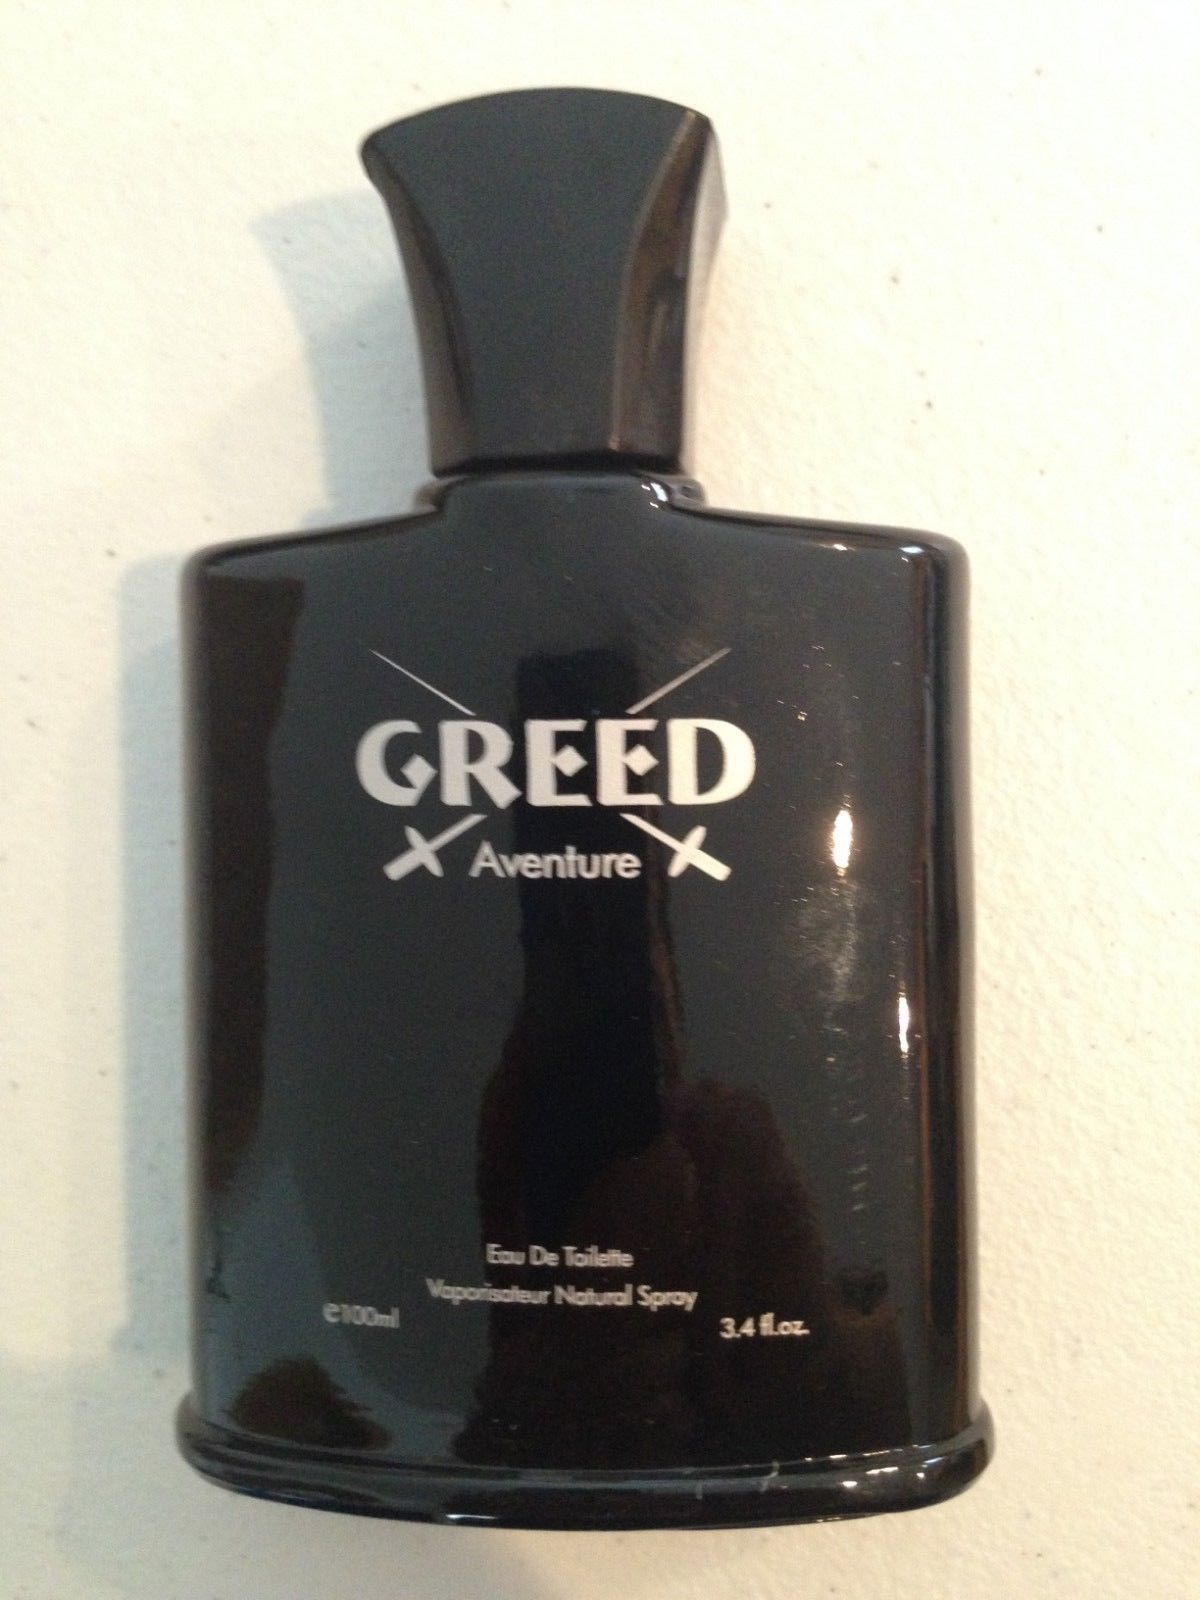 699 Greed Adventure Creed Aventus Men Eau De Cologne Toilette